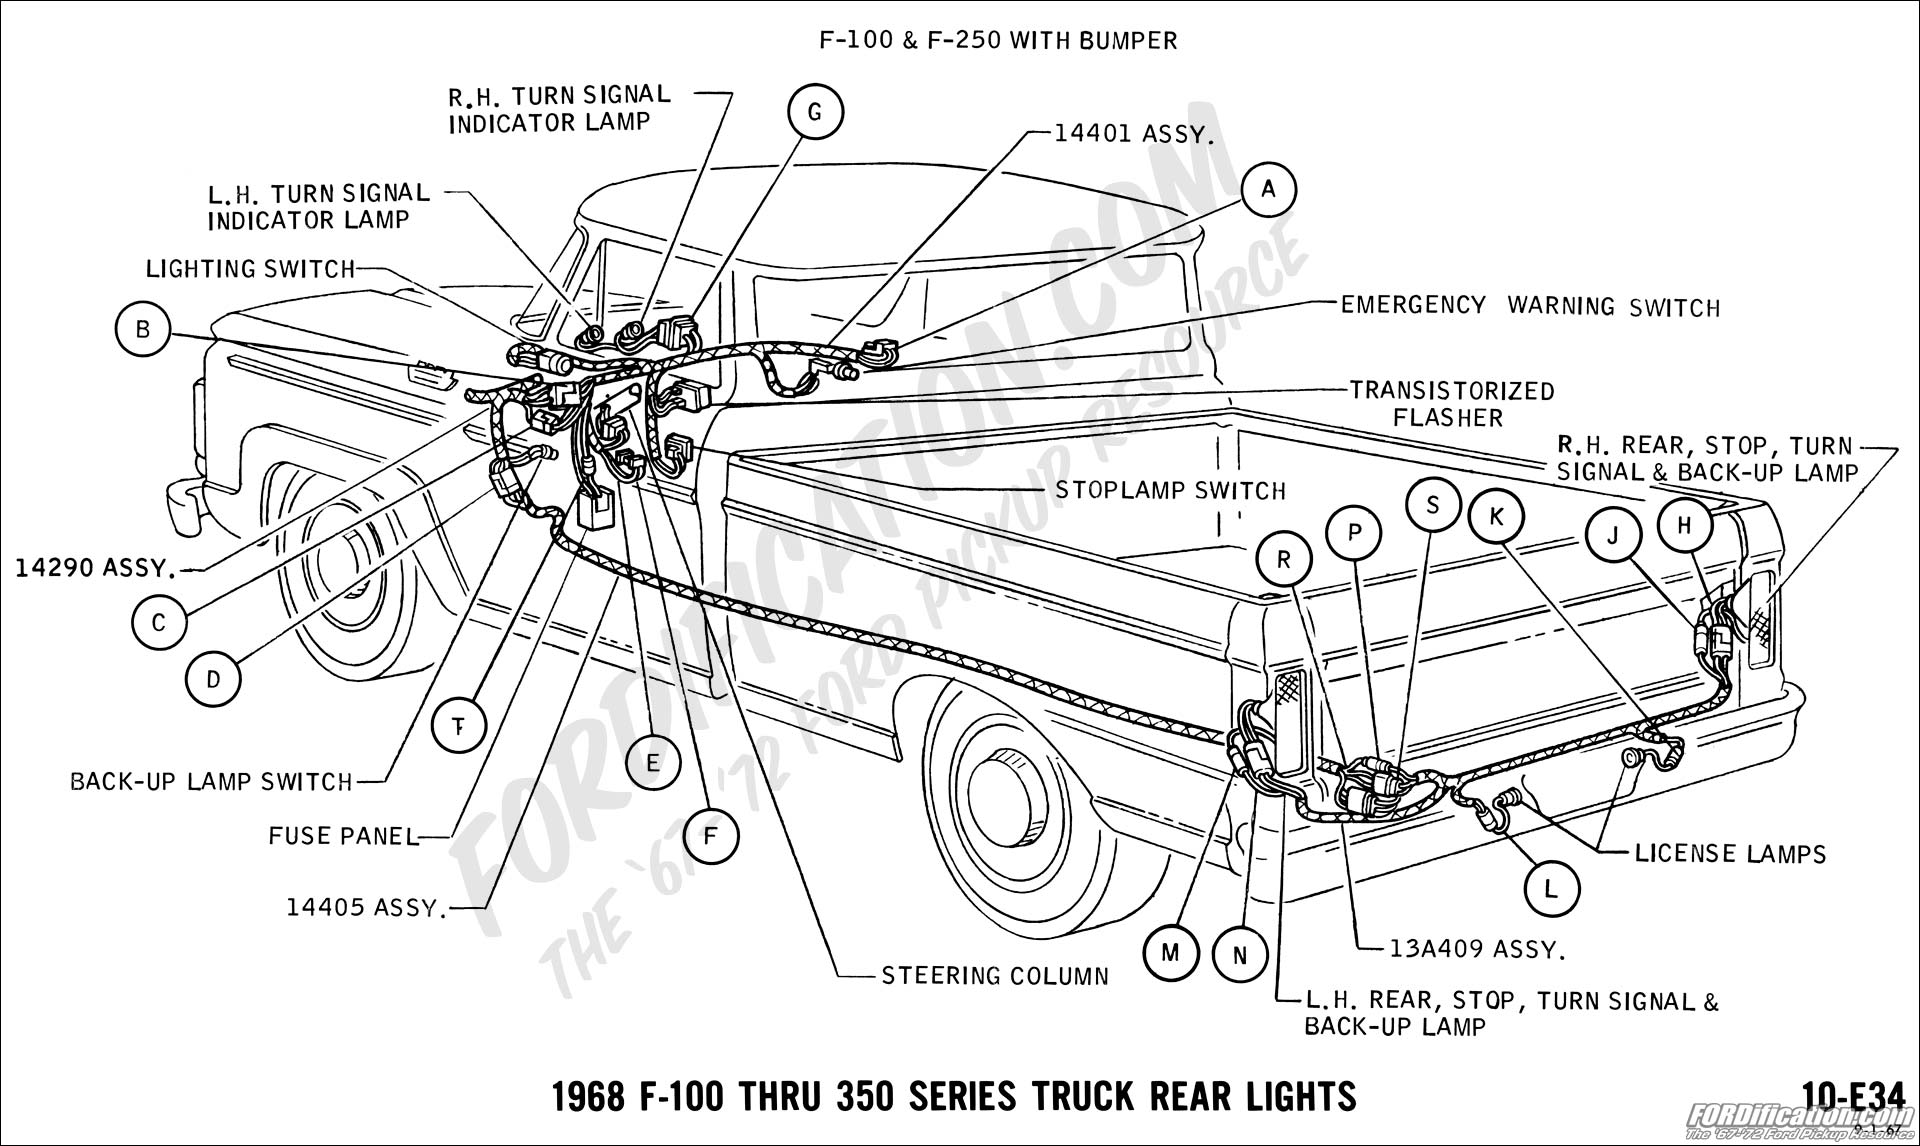 Pickup Truck Diagram Venturi Effect Pickup Truck Diagram